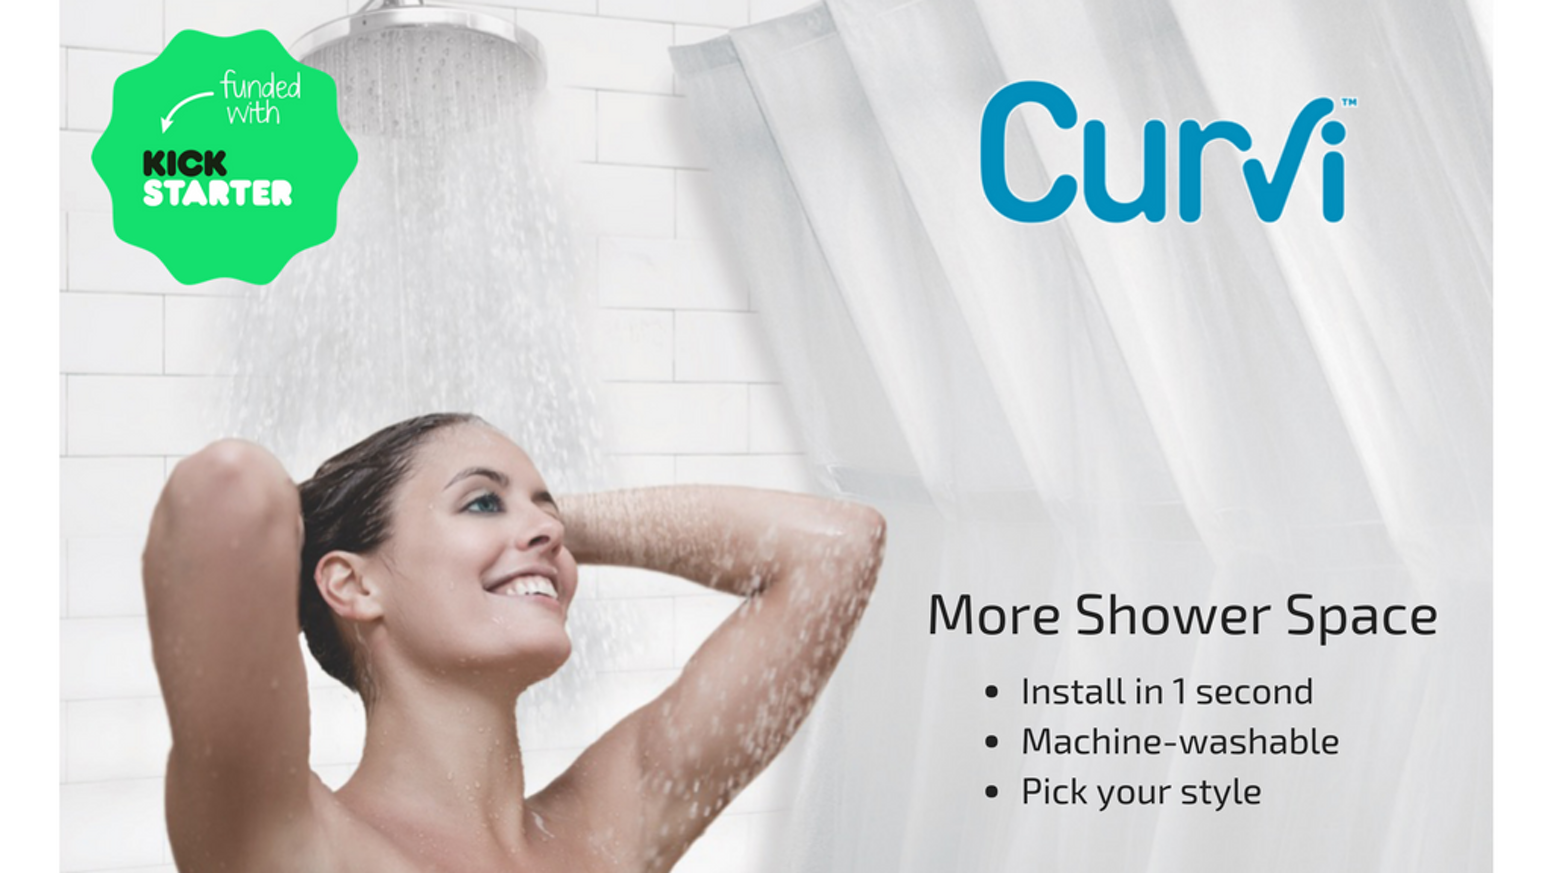 Curves out naturally. Your shower will feel huge. Install in 1 second. Machine-washable. Lasting value. Keep stylish curtain outside.